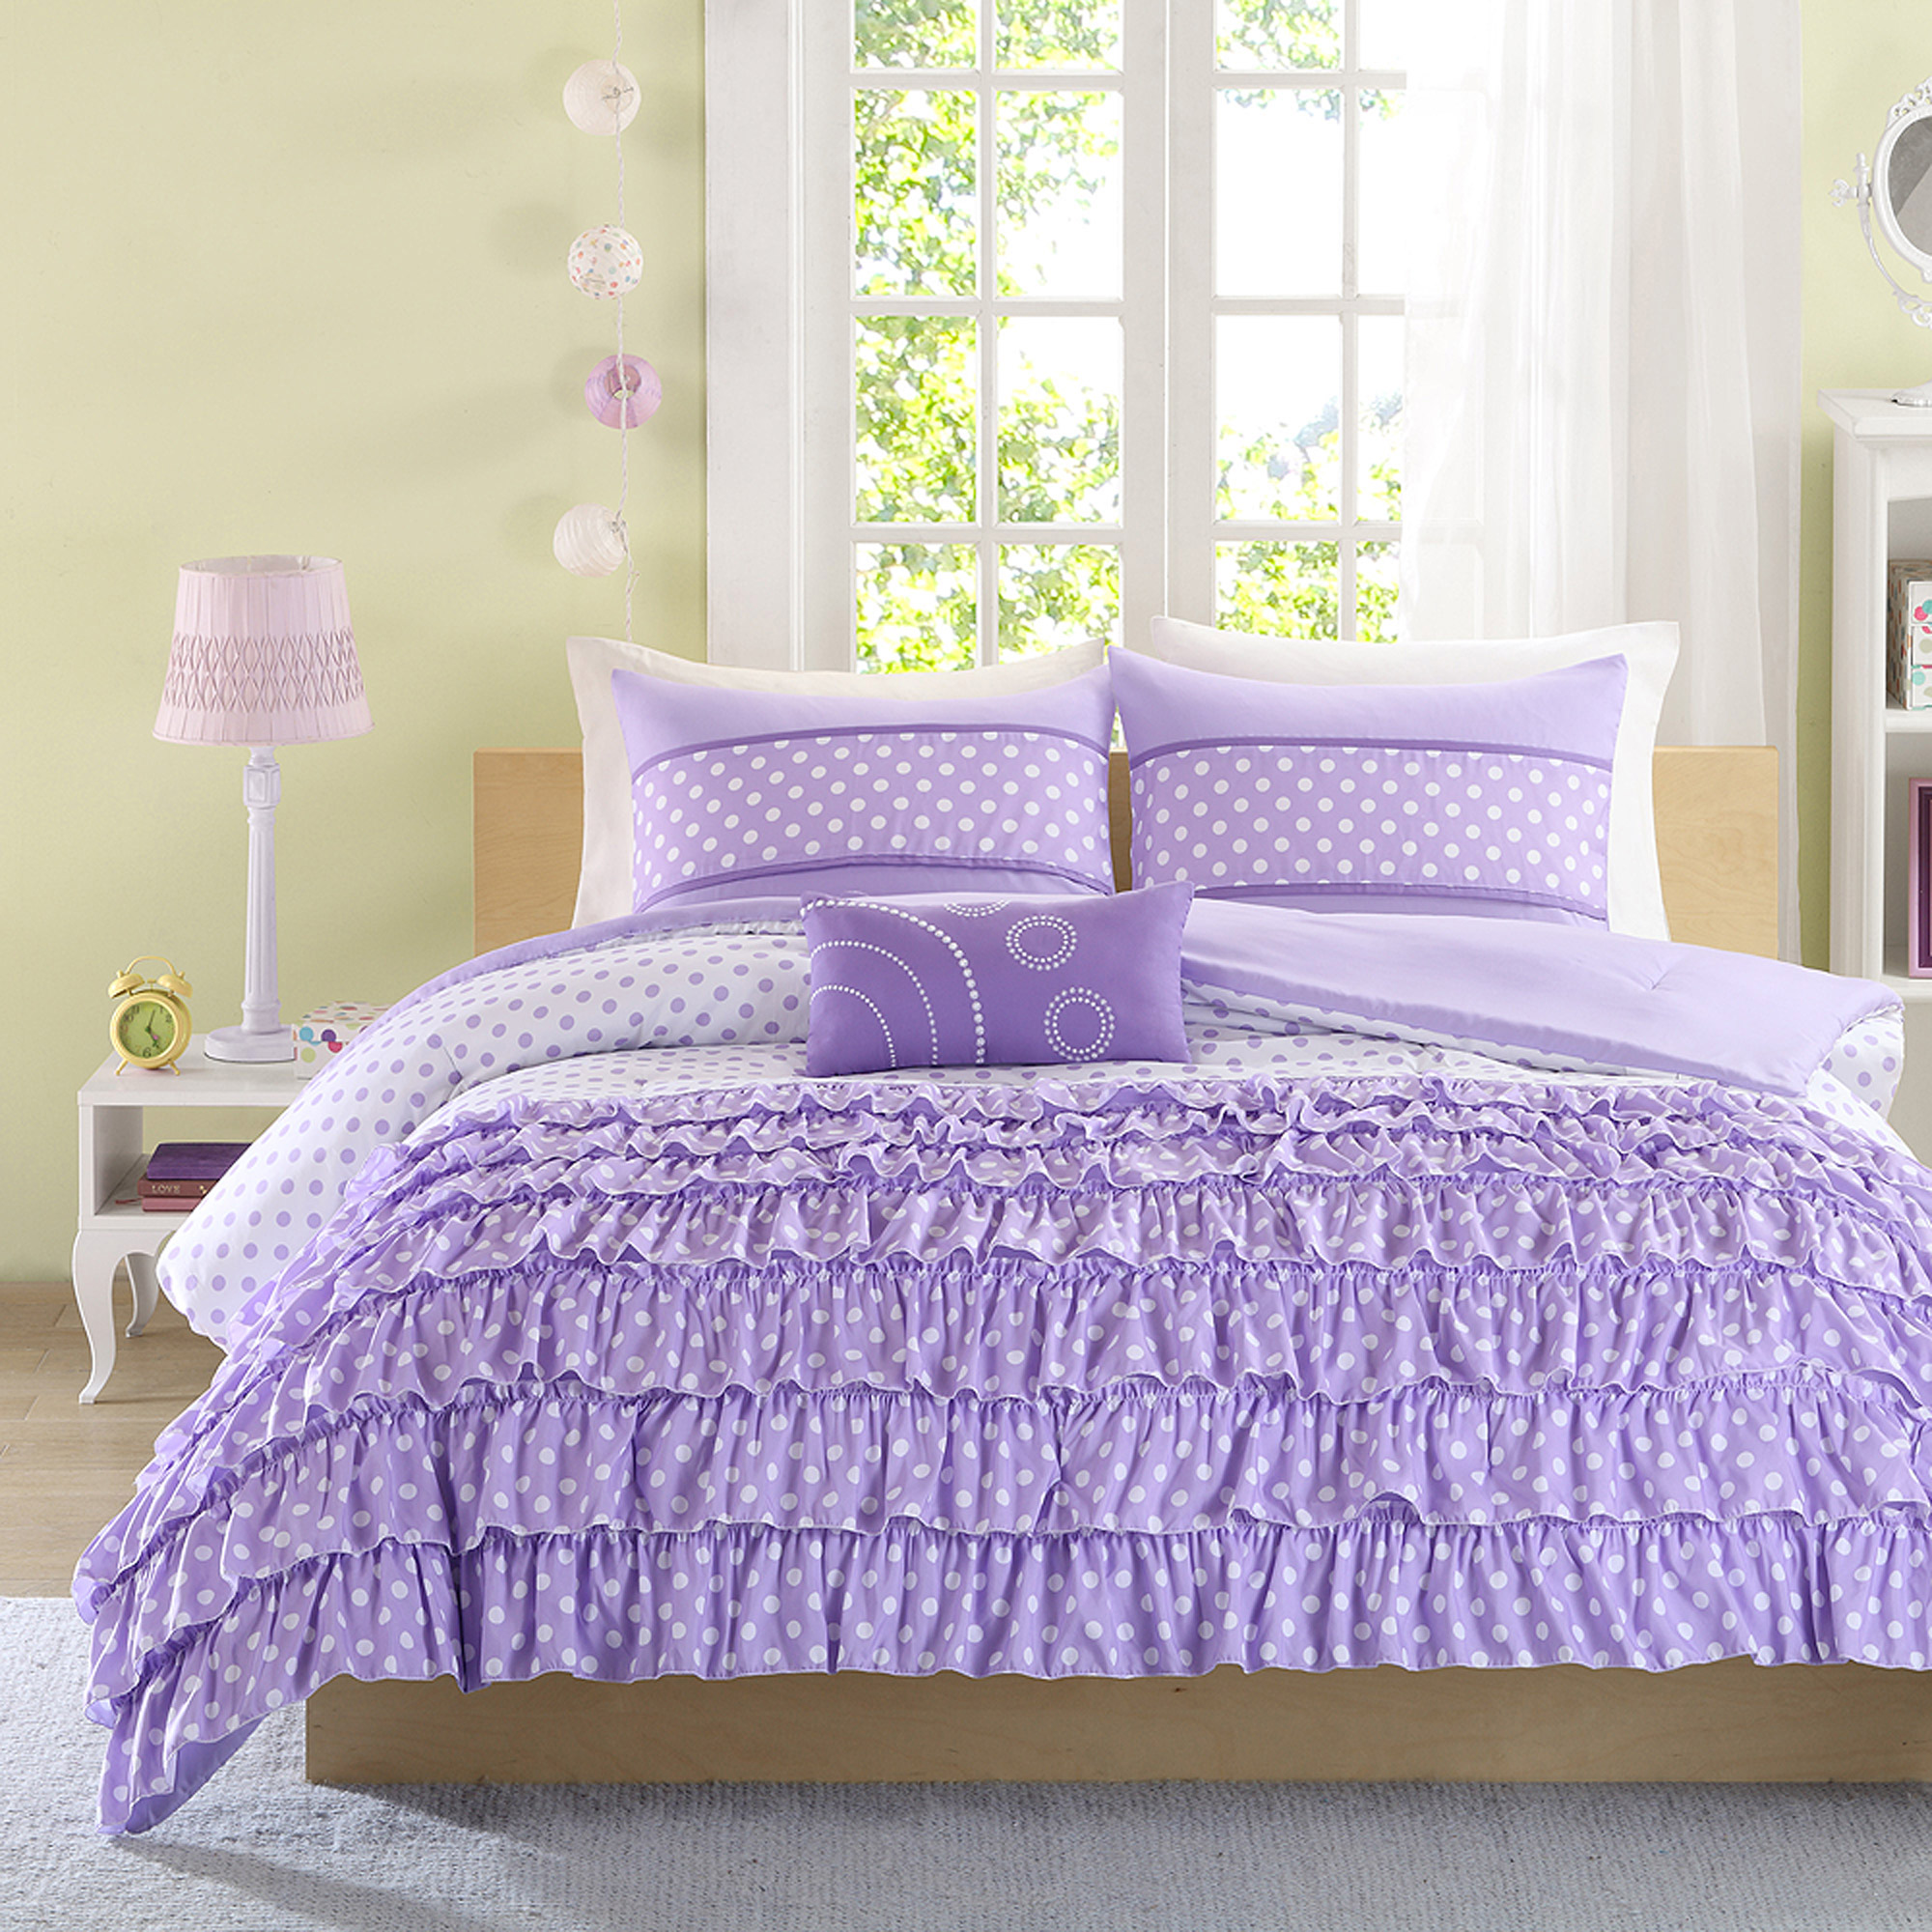 Purple bedding for teenage girls - Purple Bedding For Teenage Girls 46